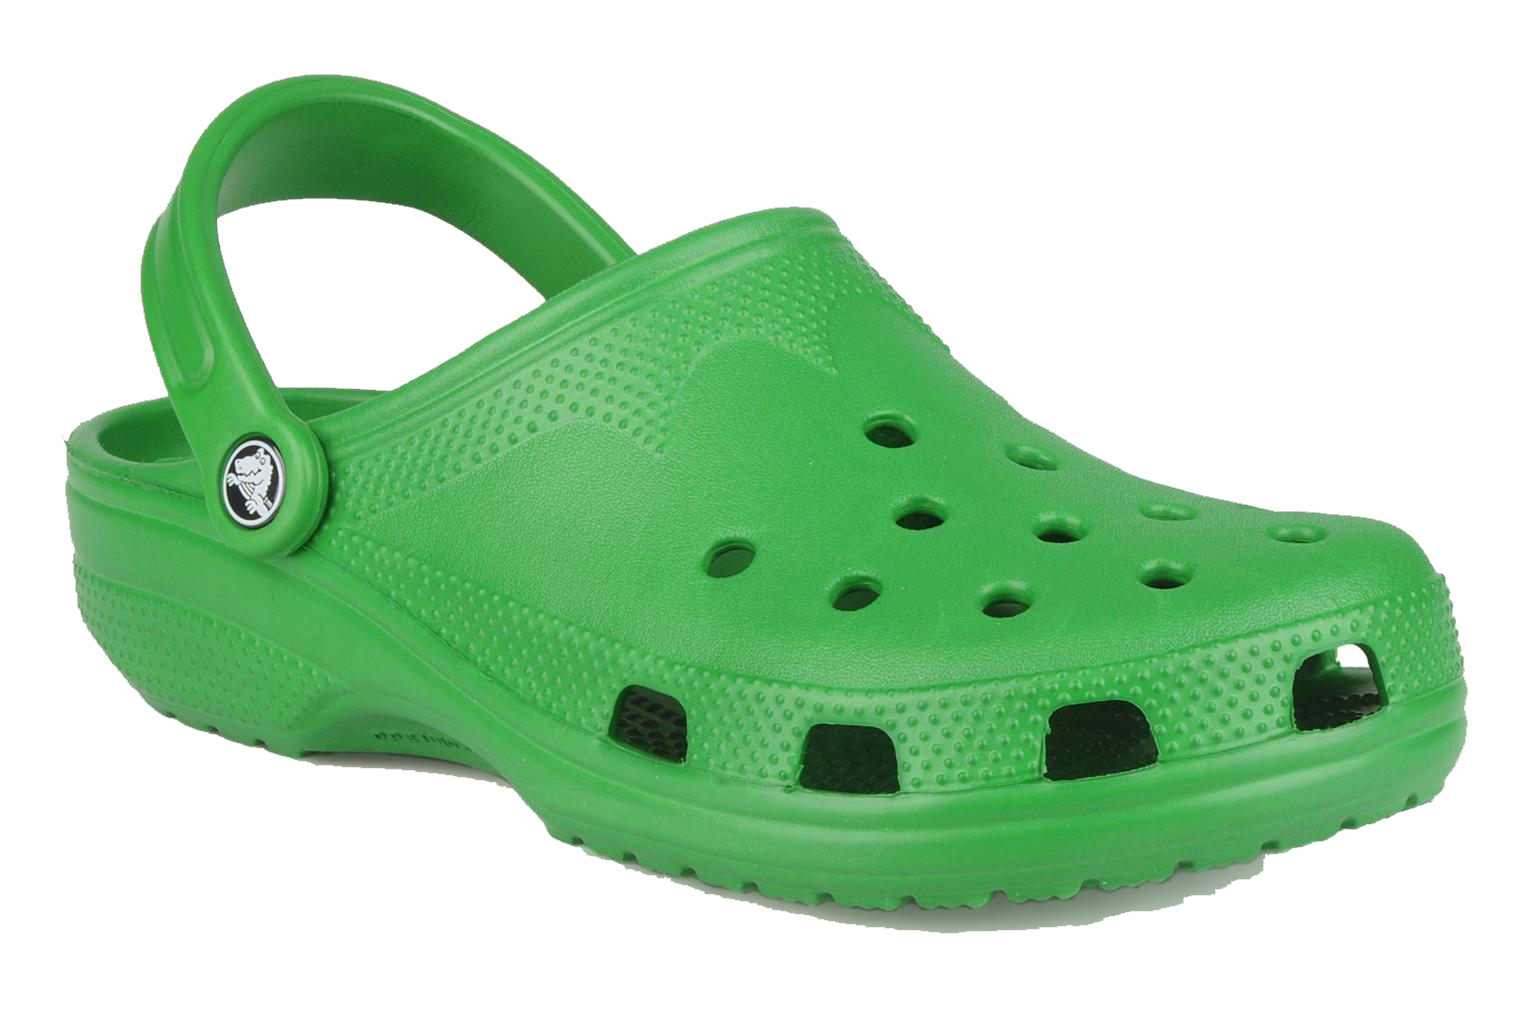 Croc shoe png. Pin by mr humble